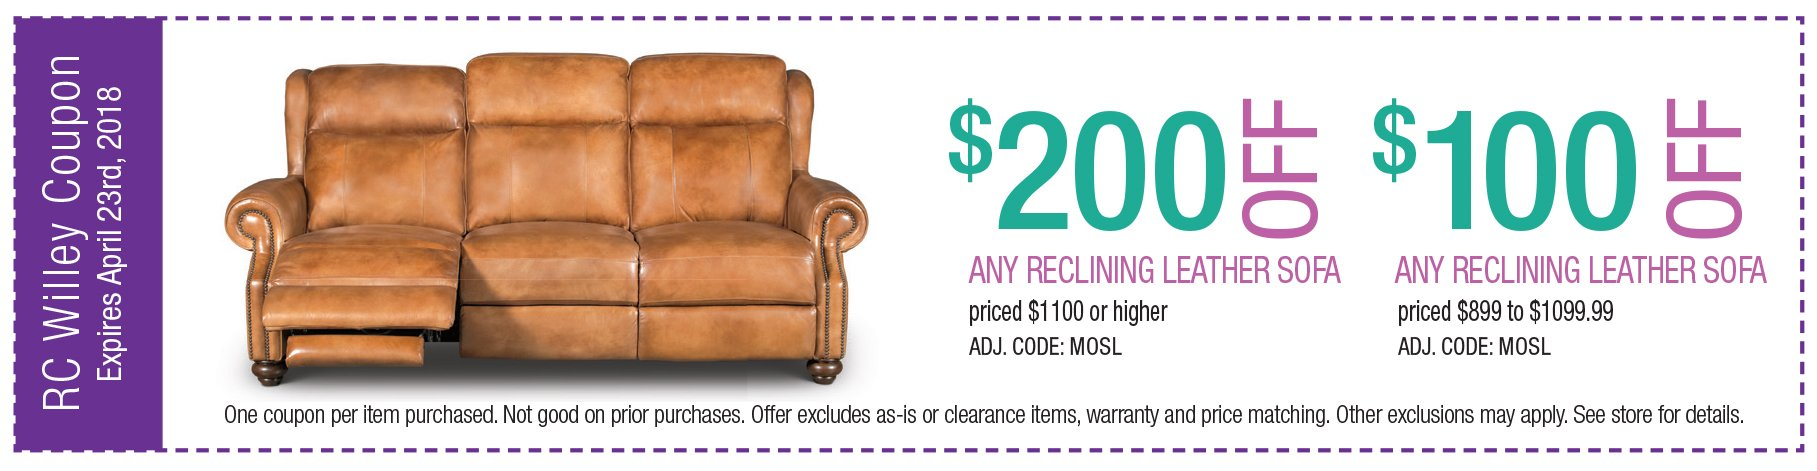 $200 off any reclining leather sofa $1100 or higher. $100 off any reclining leather sofa $999 - $1099.99